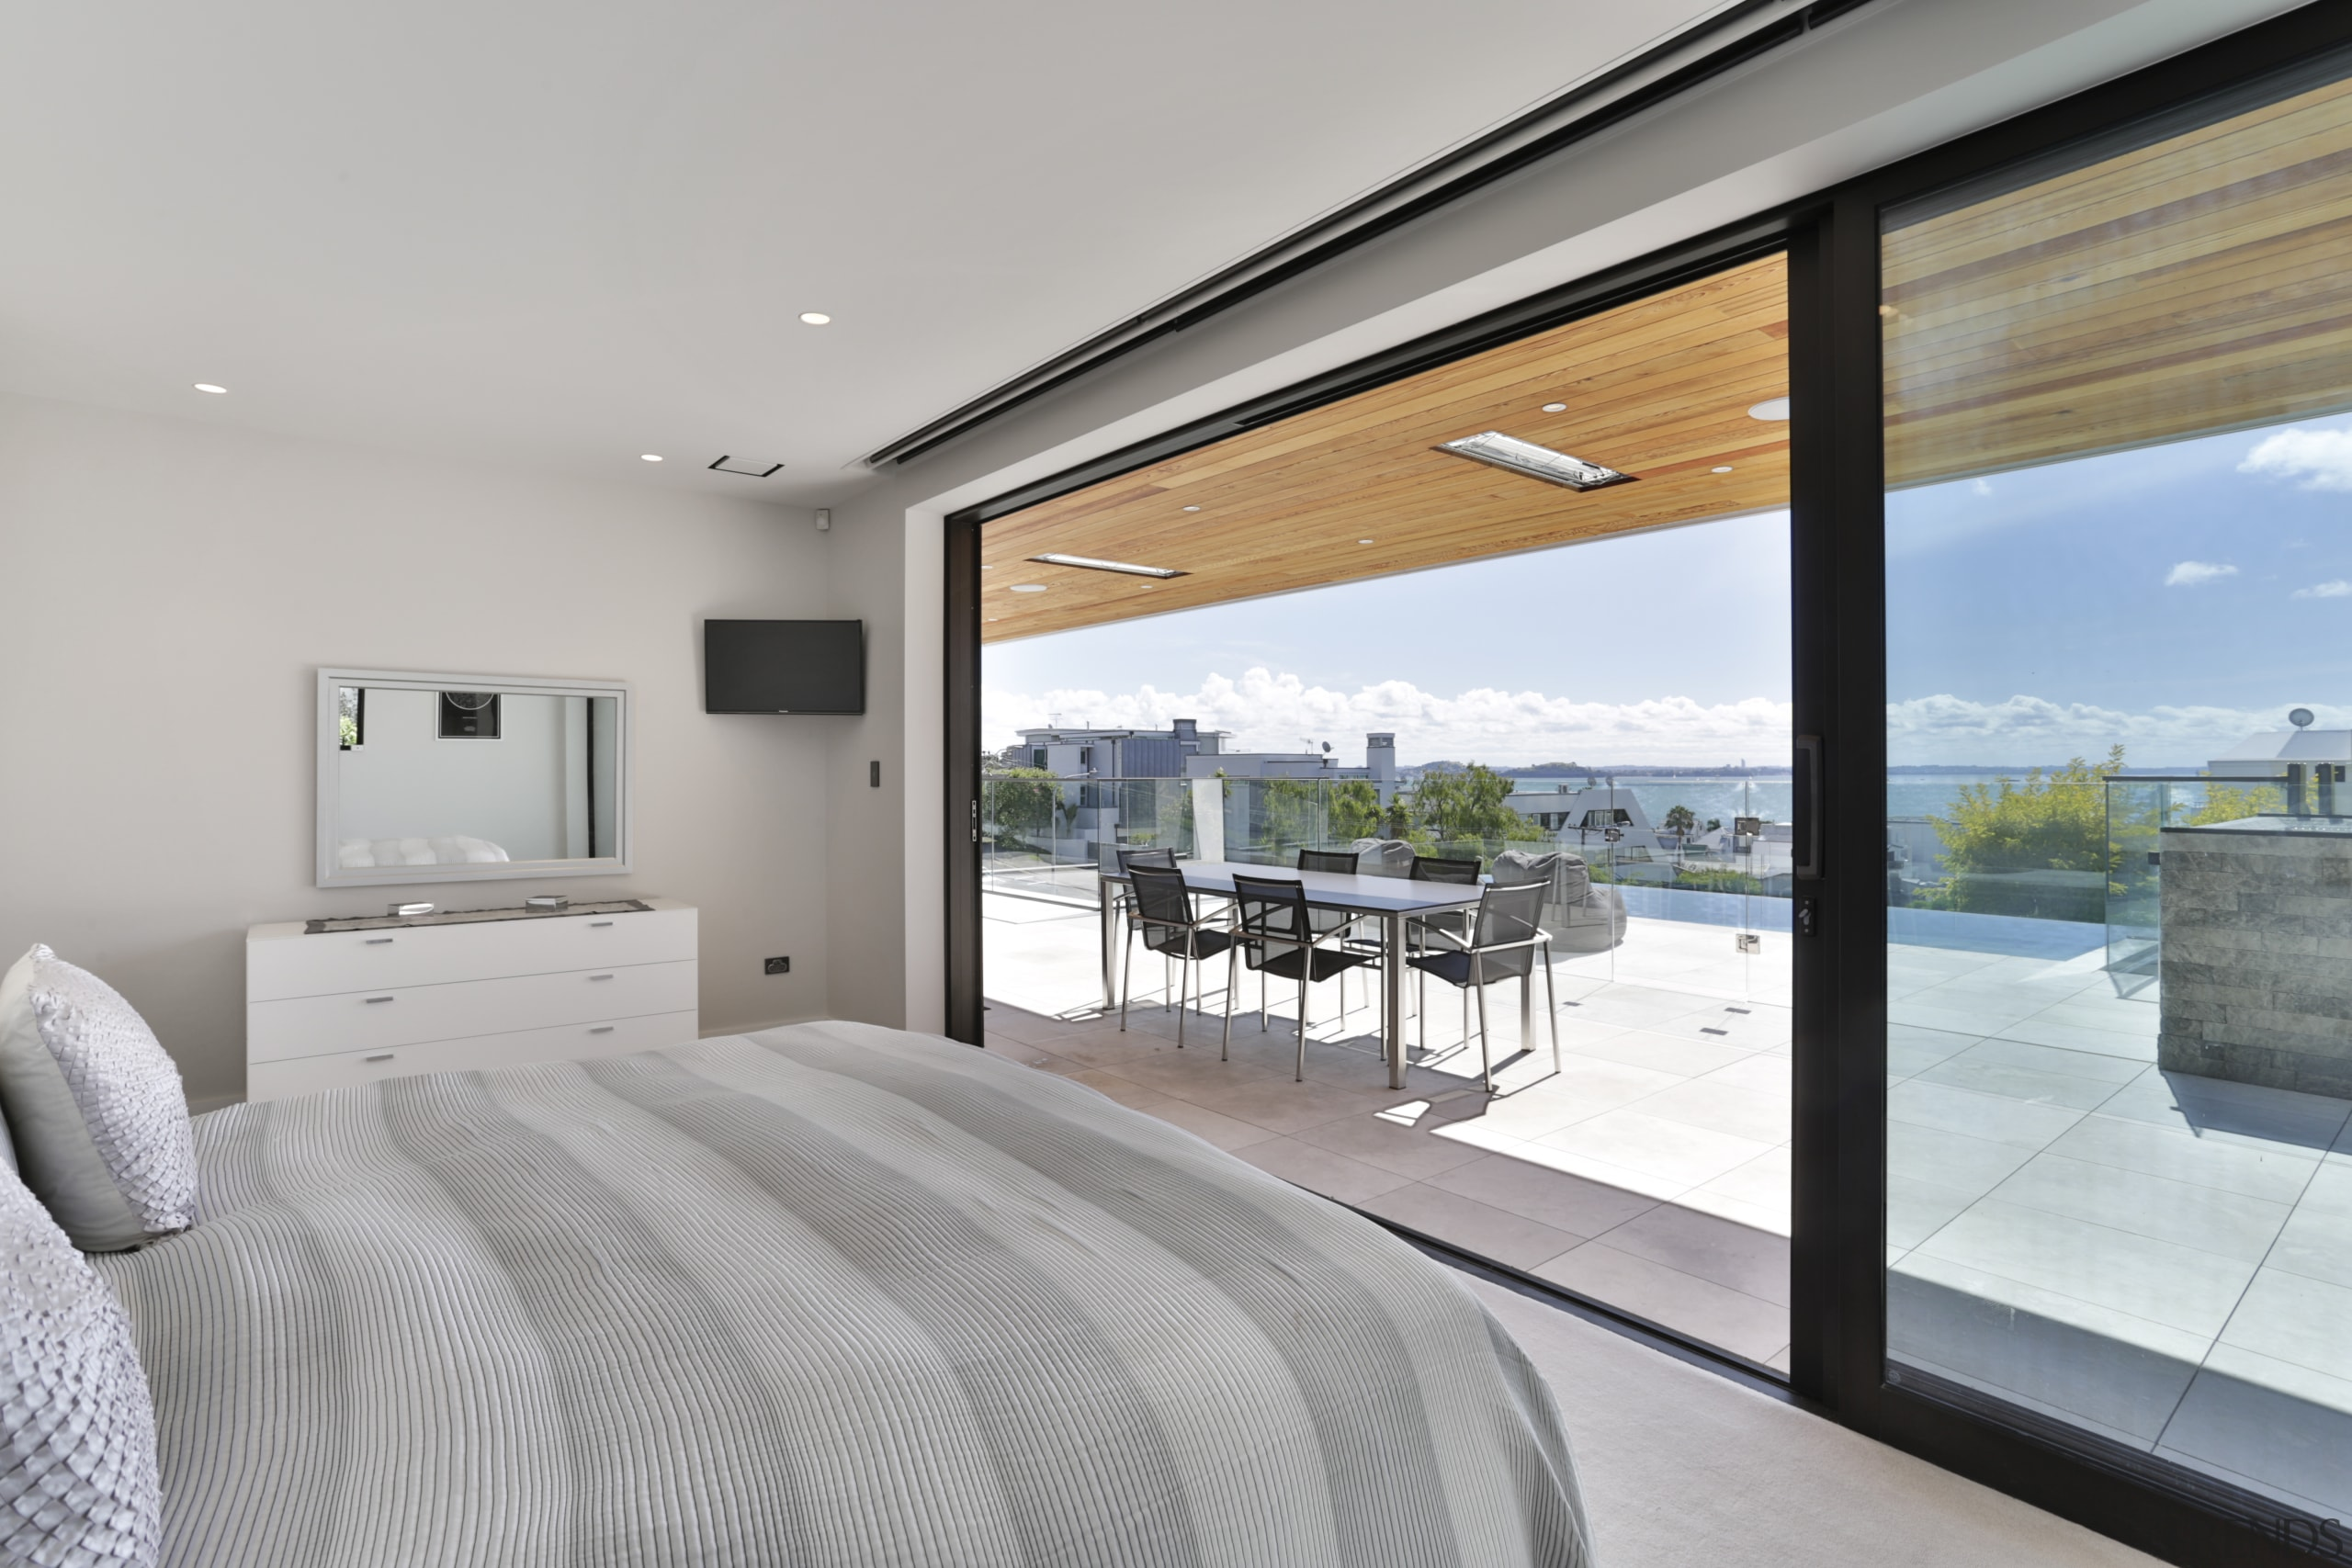 This master bedroom in a harbourview home is gray